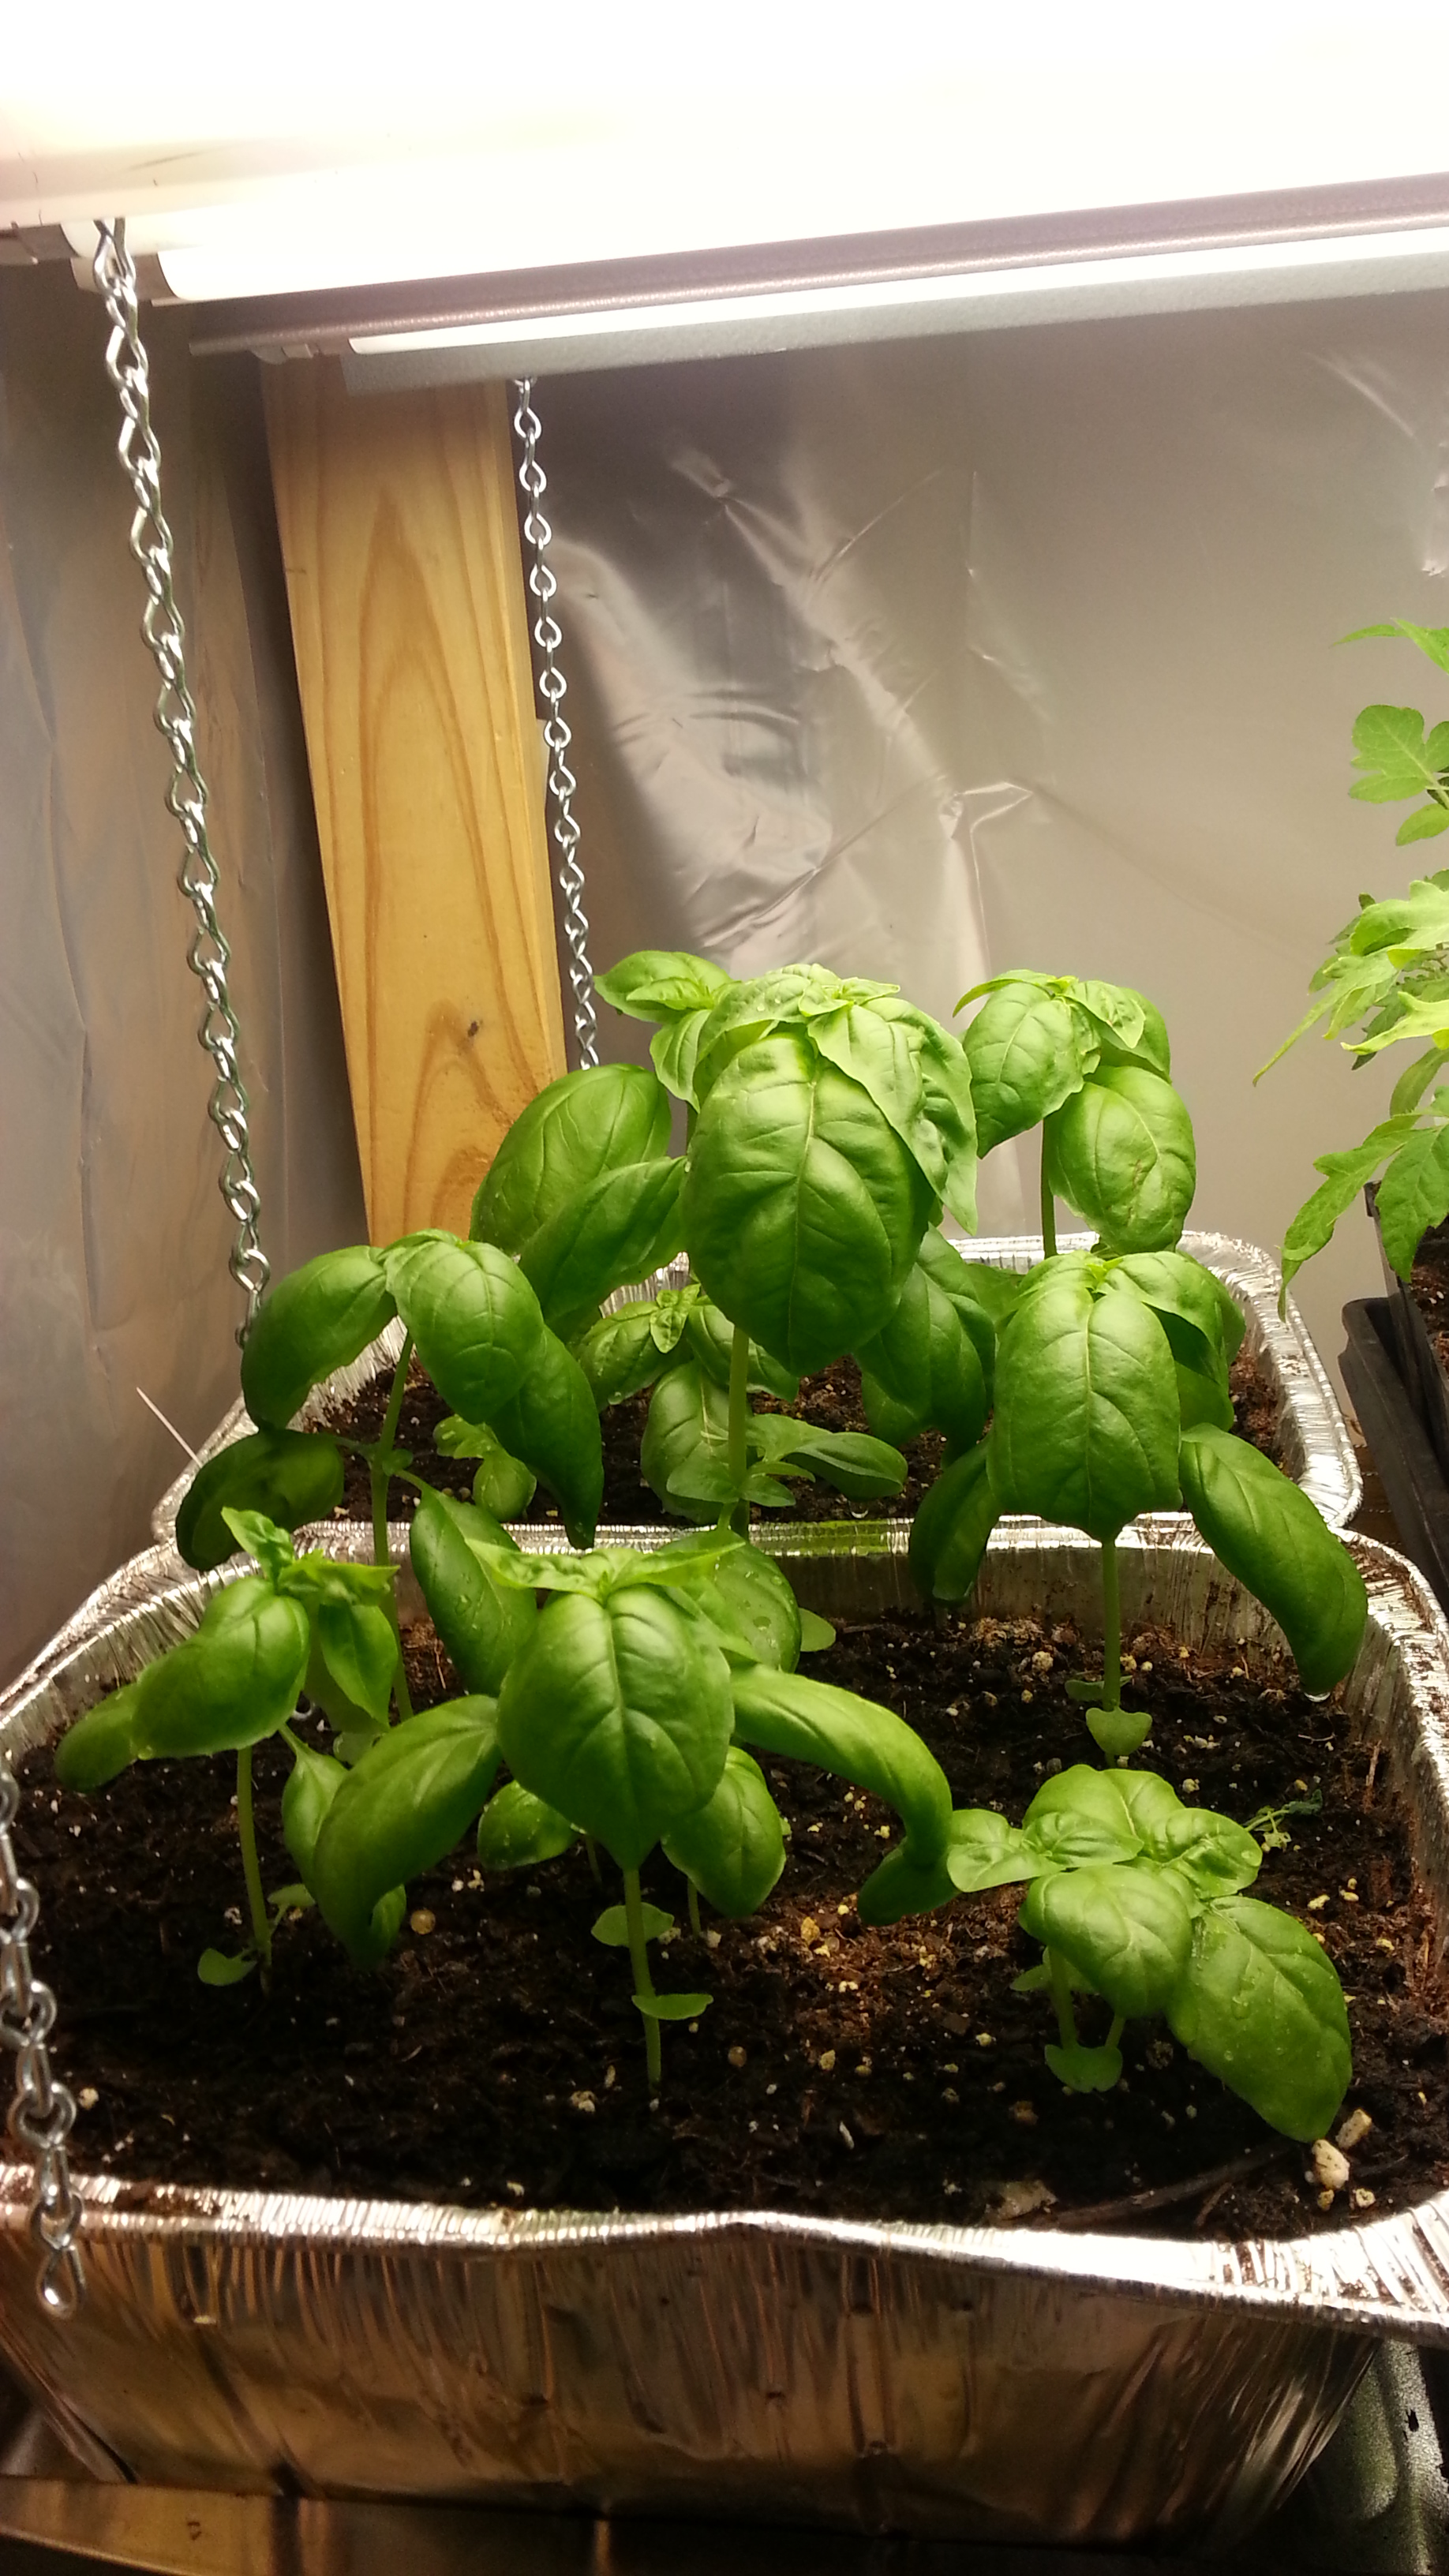 Grow Light Idaho Gardening Wiring Up Lights This Is Basil After About 55 Days Under My Its Just Ready